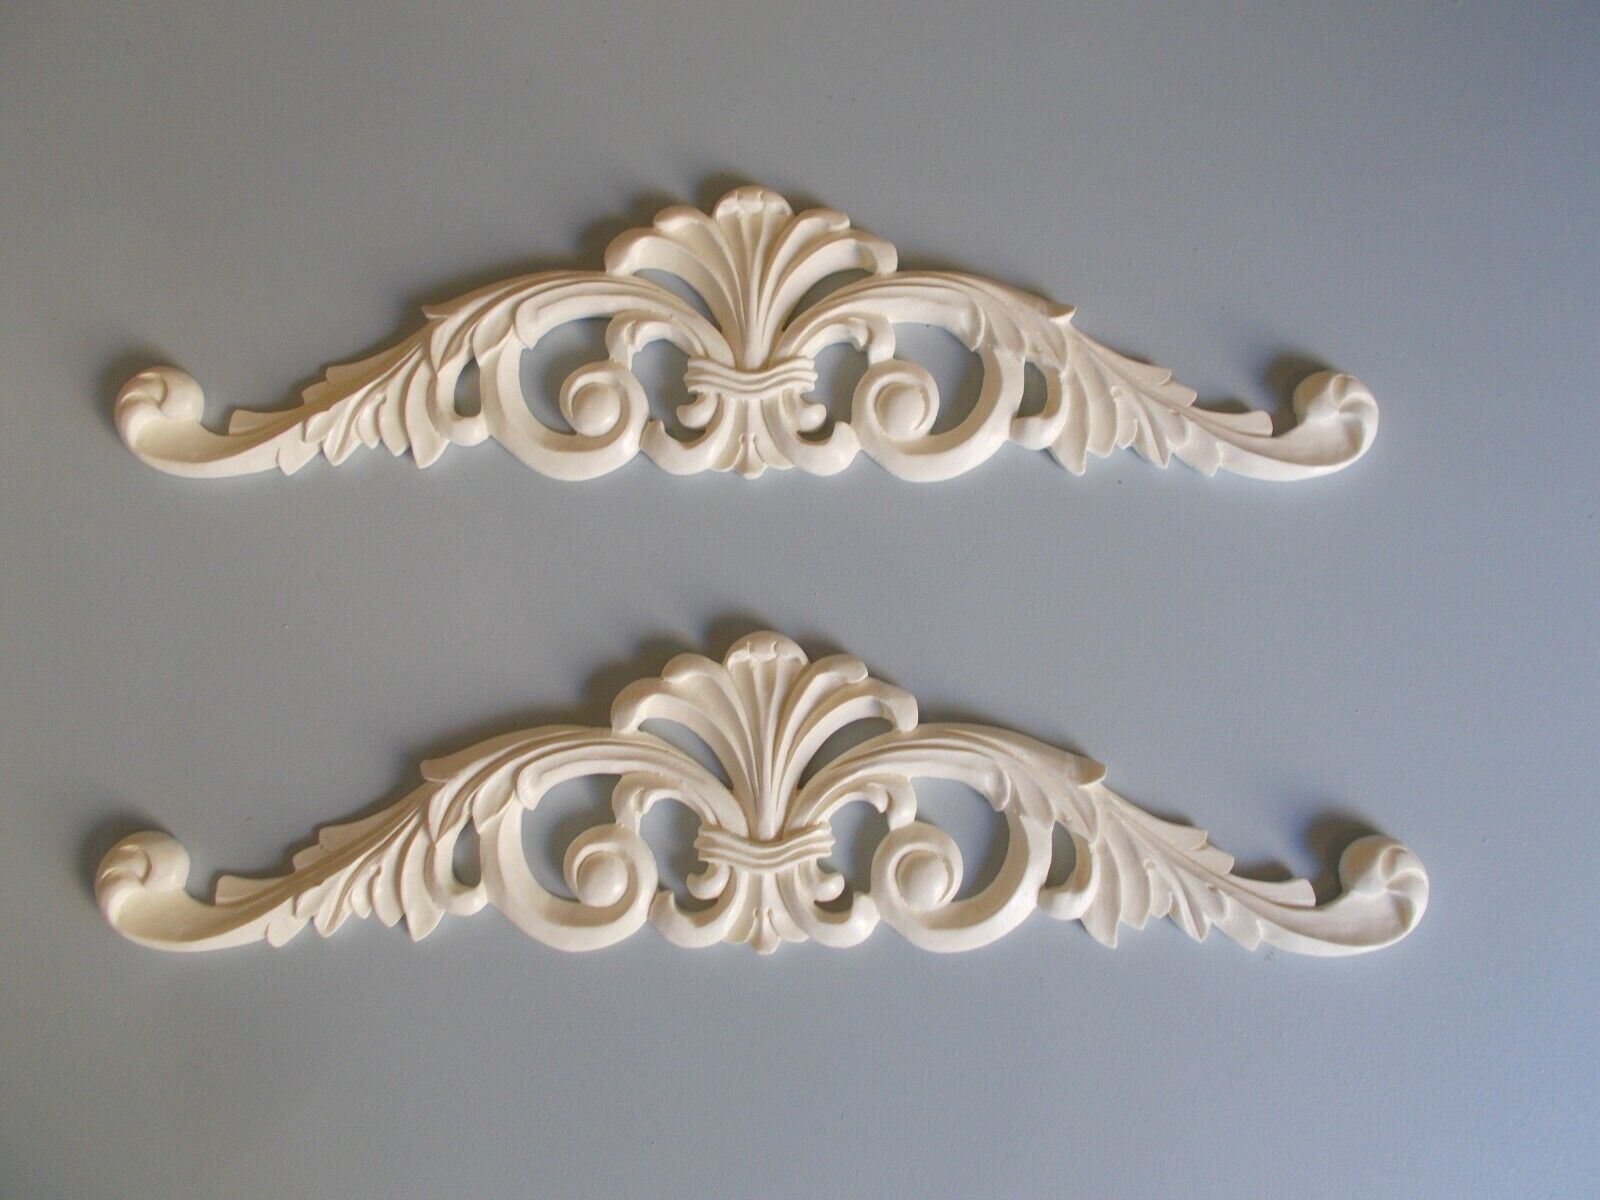 Two Decorative French Style Ornate Double Scroll Pediment   Mirror Molding Weiß